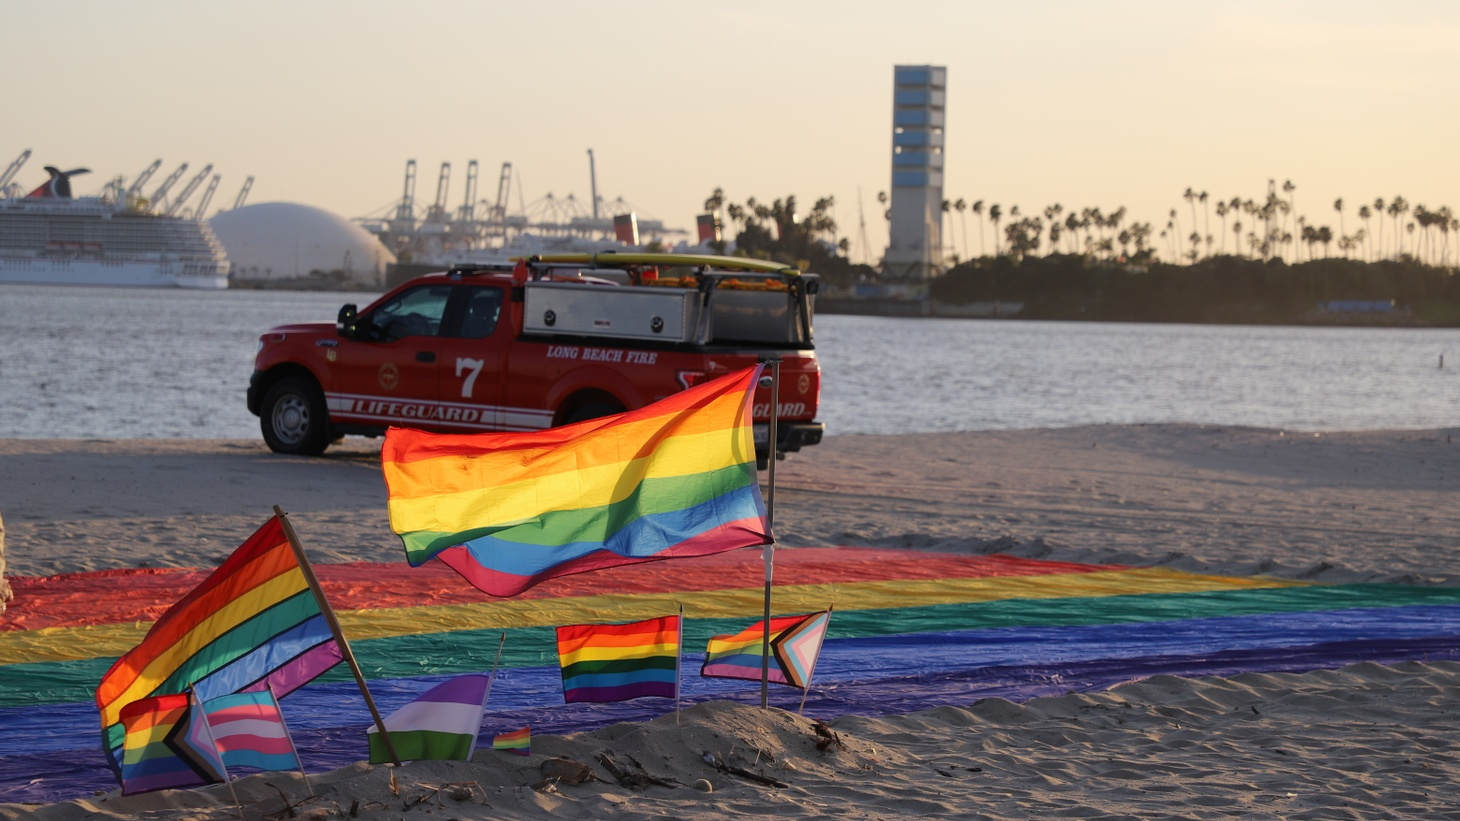 The LGBTQ pride lifeguard tower once stood here.